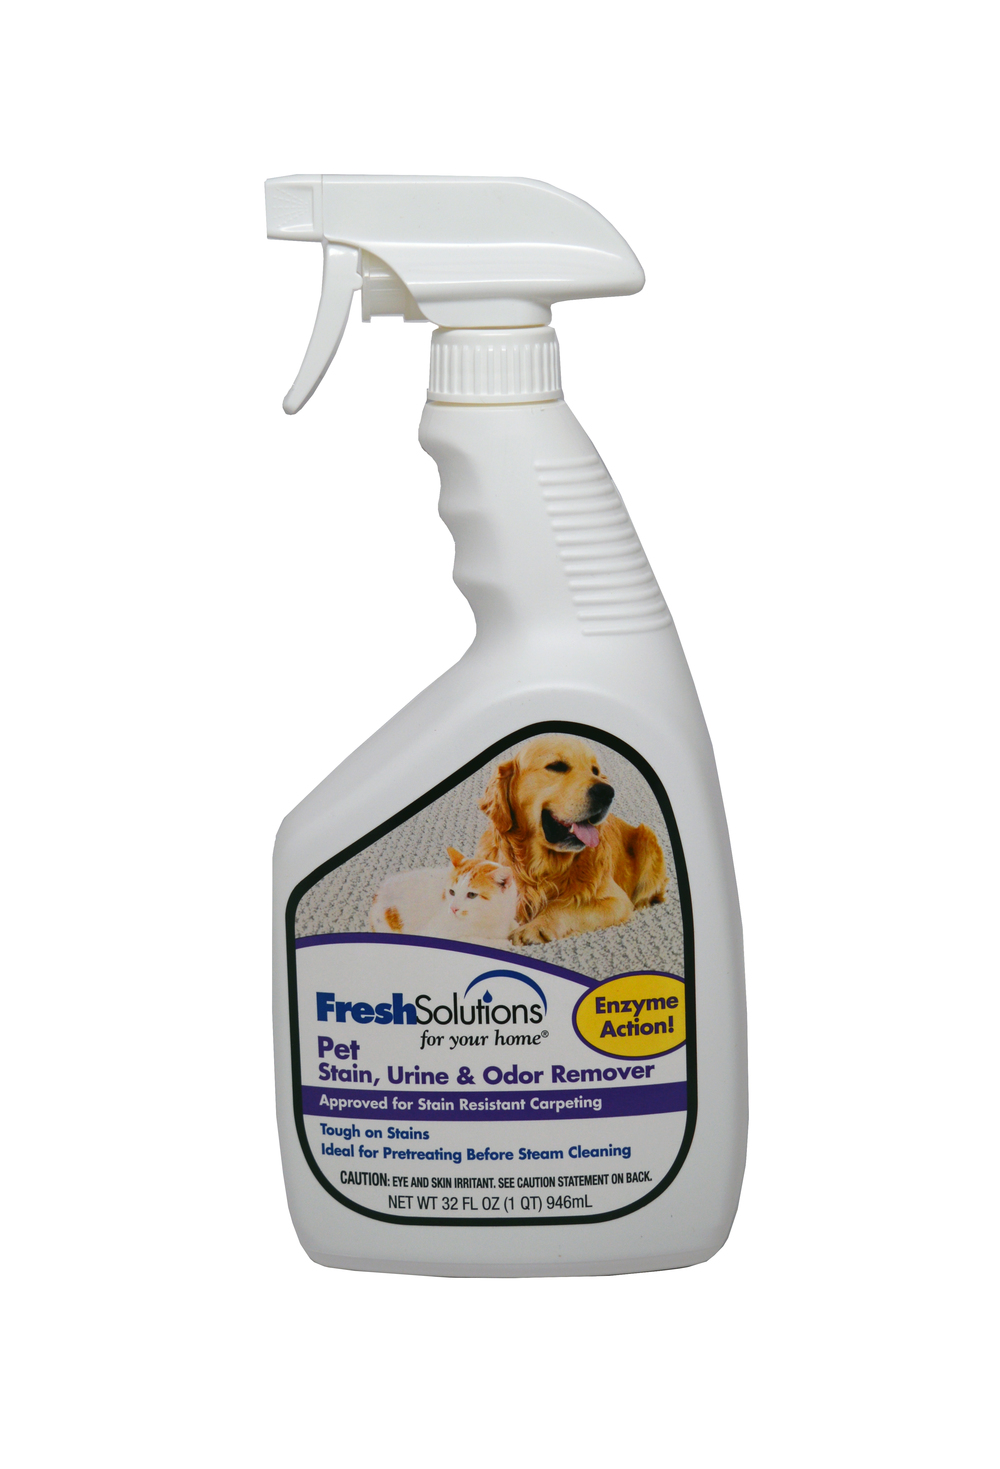 Pet Stain & Urine Odor Remover